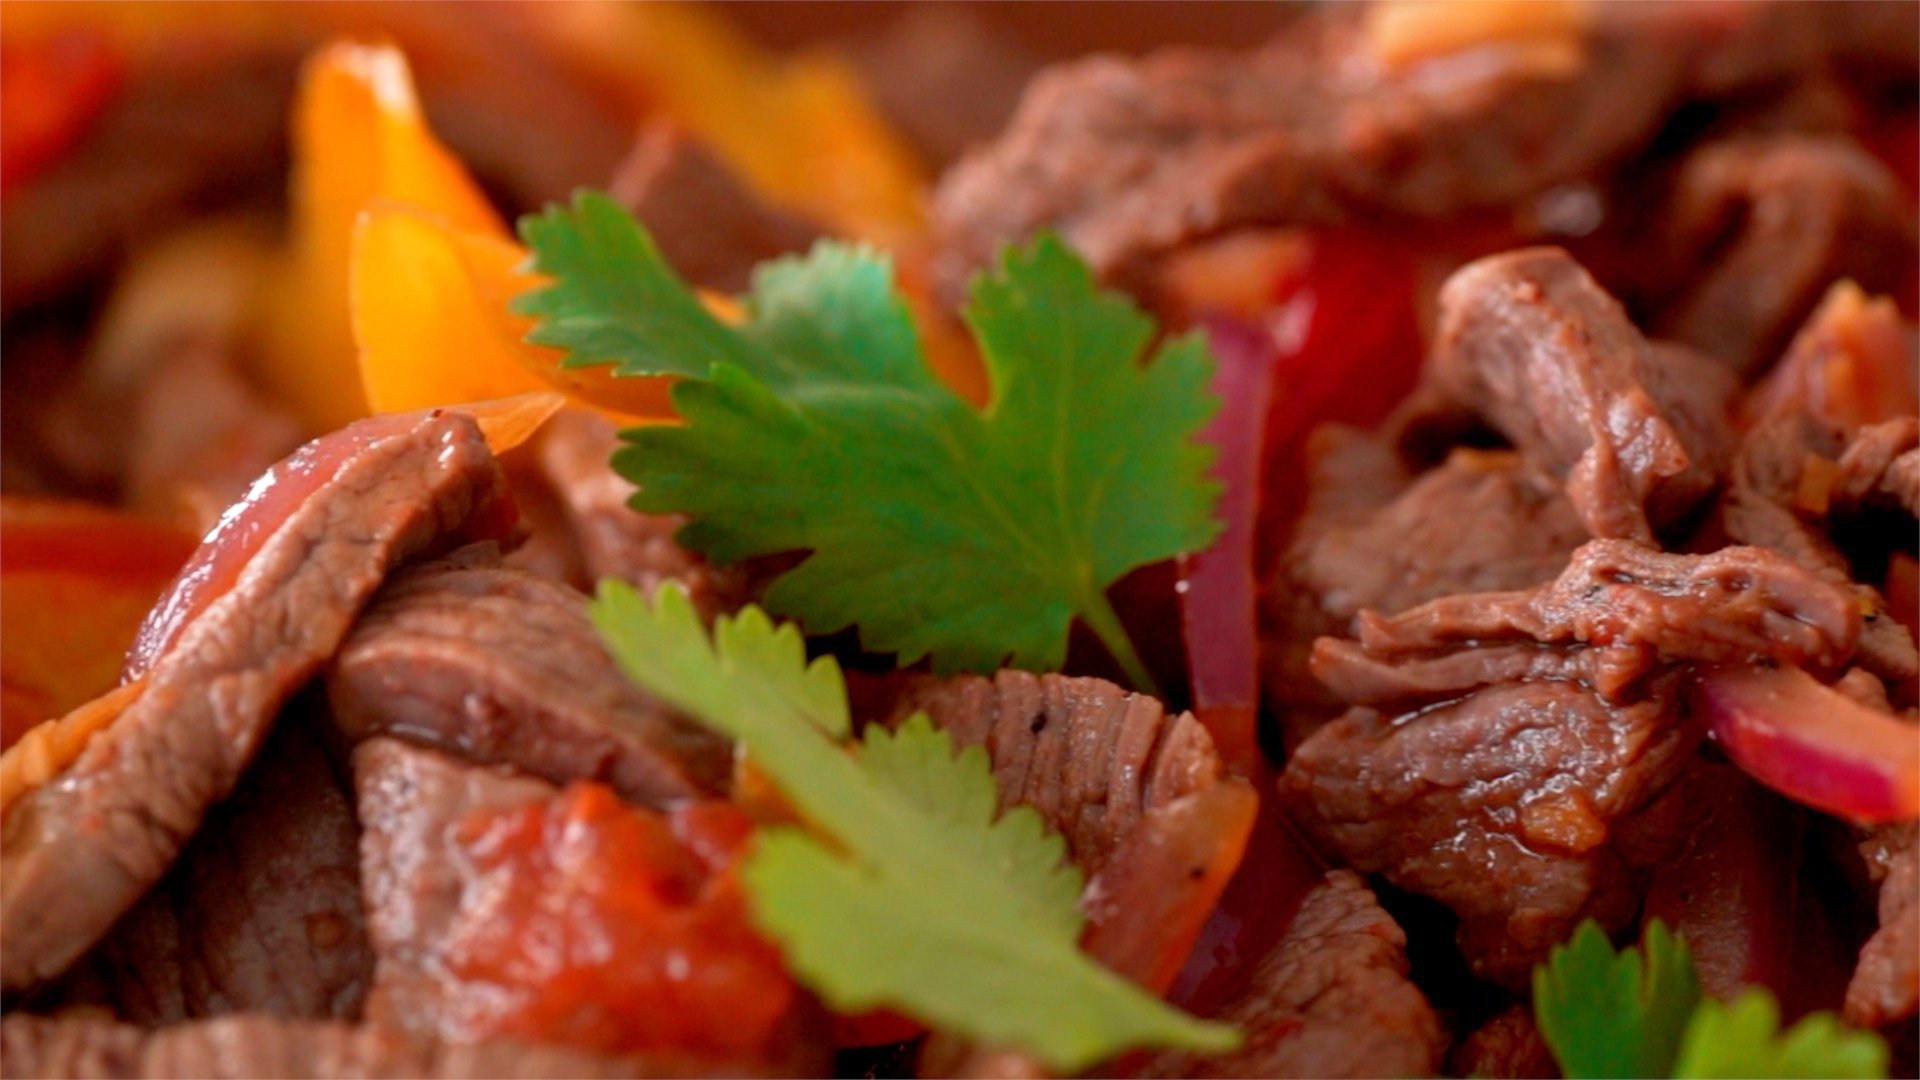 Lomo Saltado is a stir-fry of beef, peppers, tomatoes and onions.